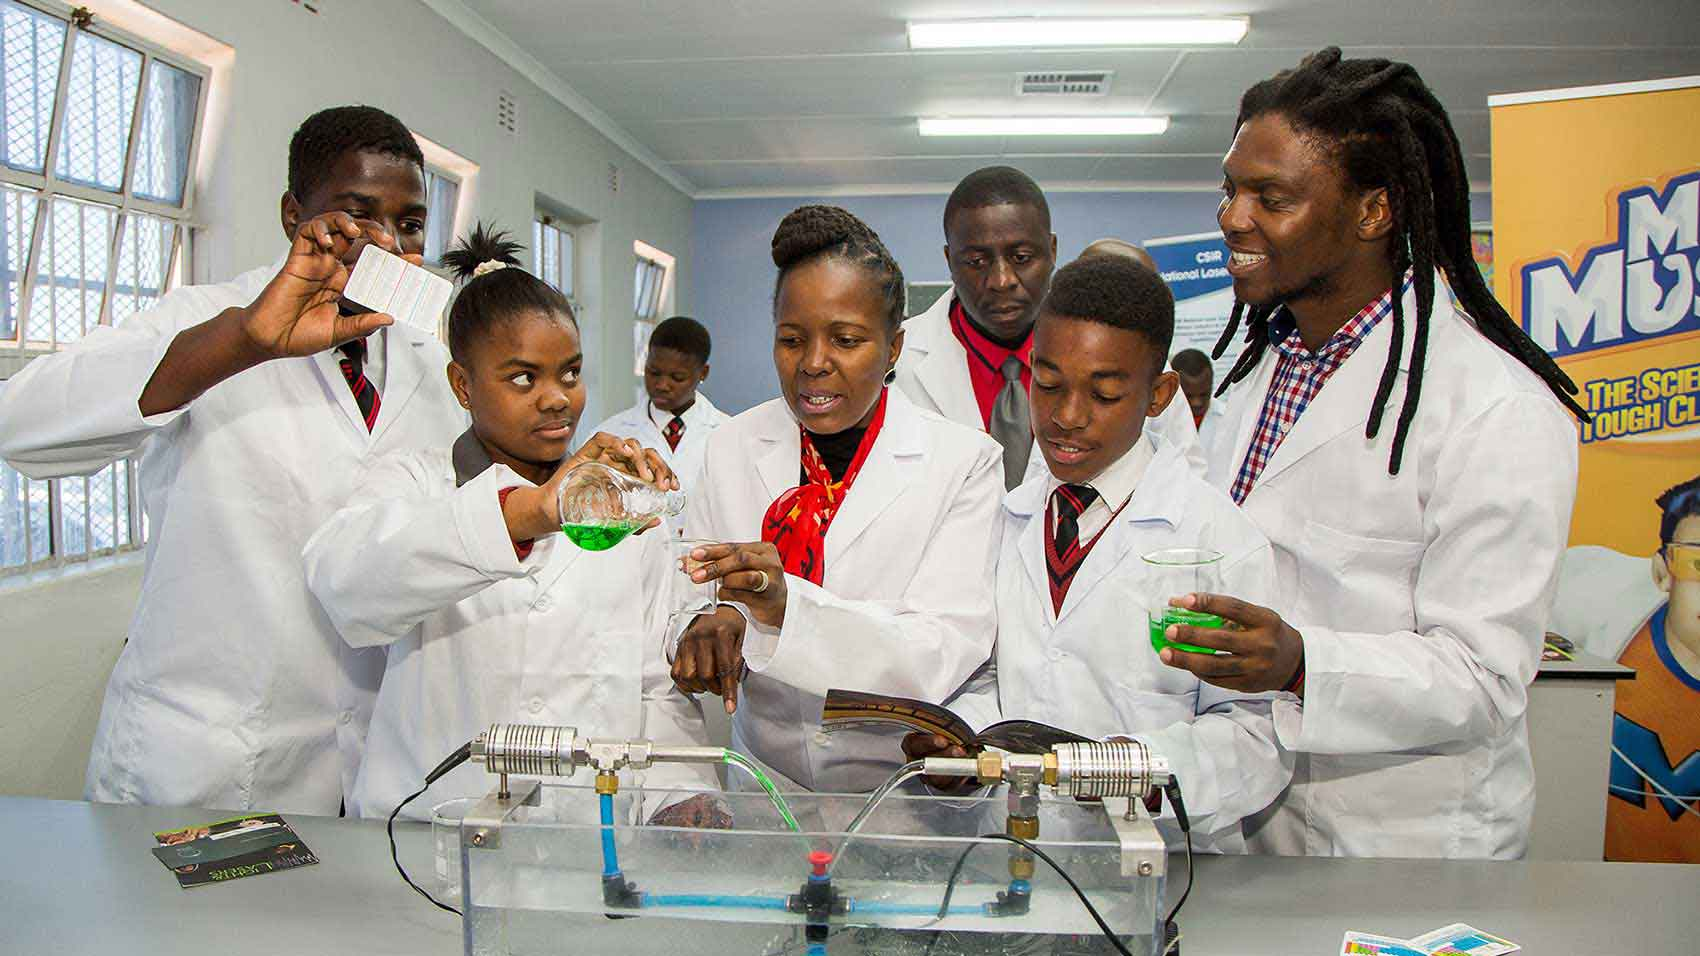 SC Johnson's corporate philanthropy program provides science lab and equipment for students.